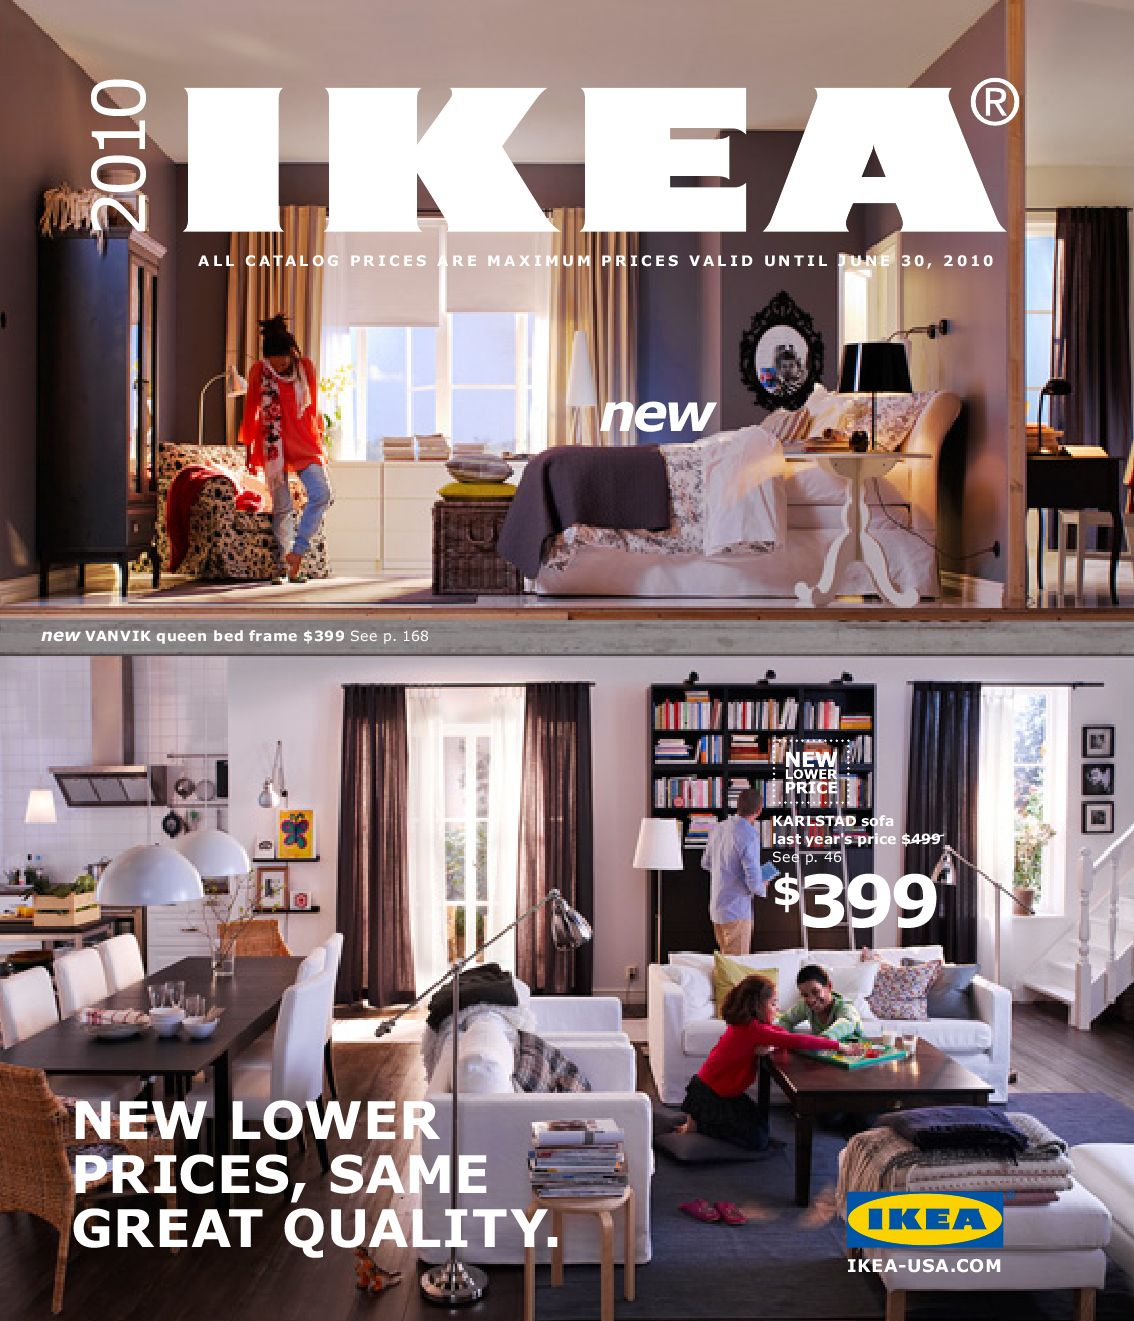 Ikea Home Filing System Ikea Catalog 2010 By Muhammad Mansour Issuu